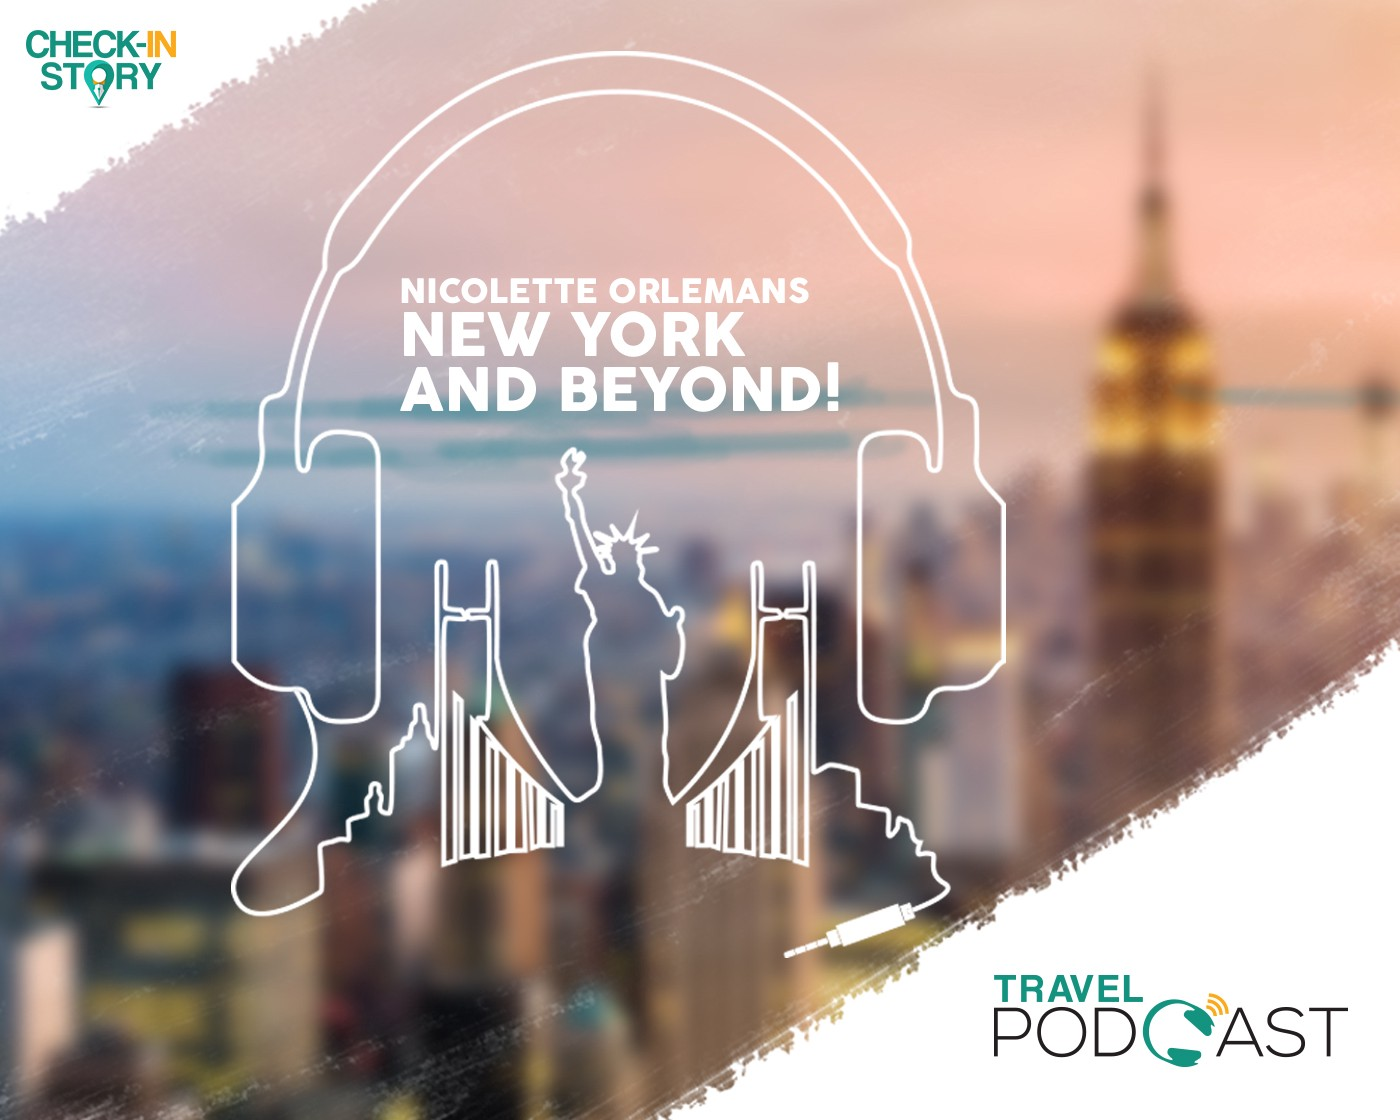 Nicolette Orlemans- New York and Beyond  - Checkin Story